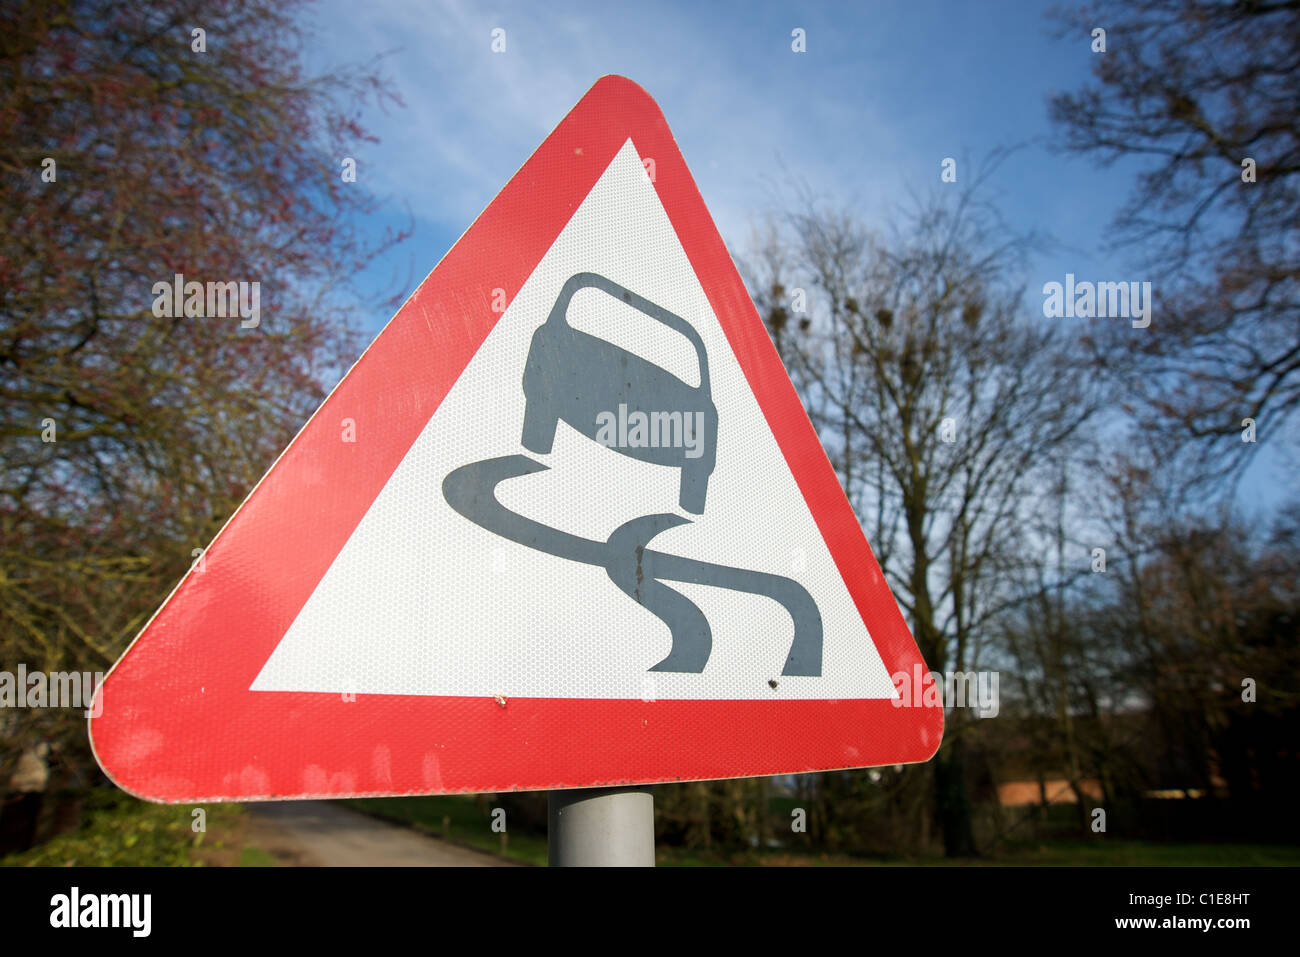 A road sign warning of a slippery road ahead, Warwickshire, England, UK - Stock Image